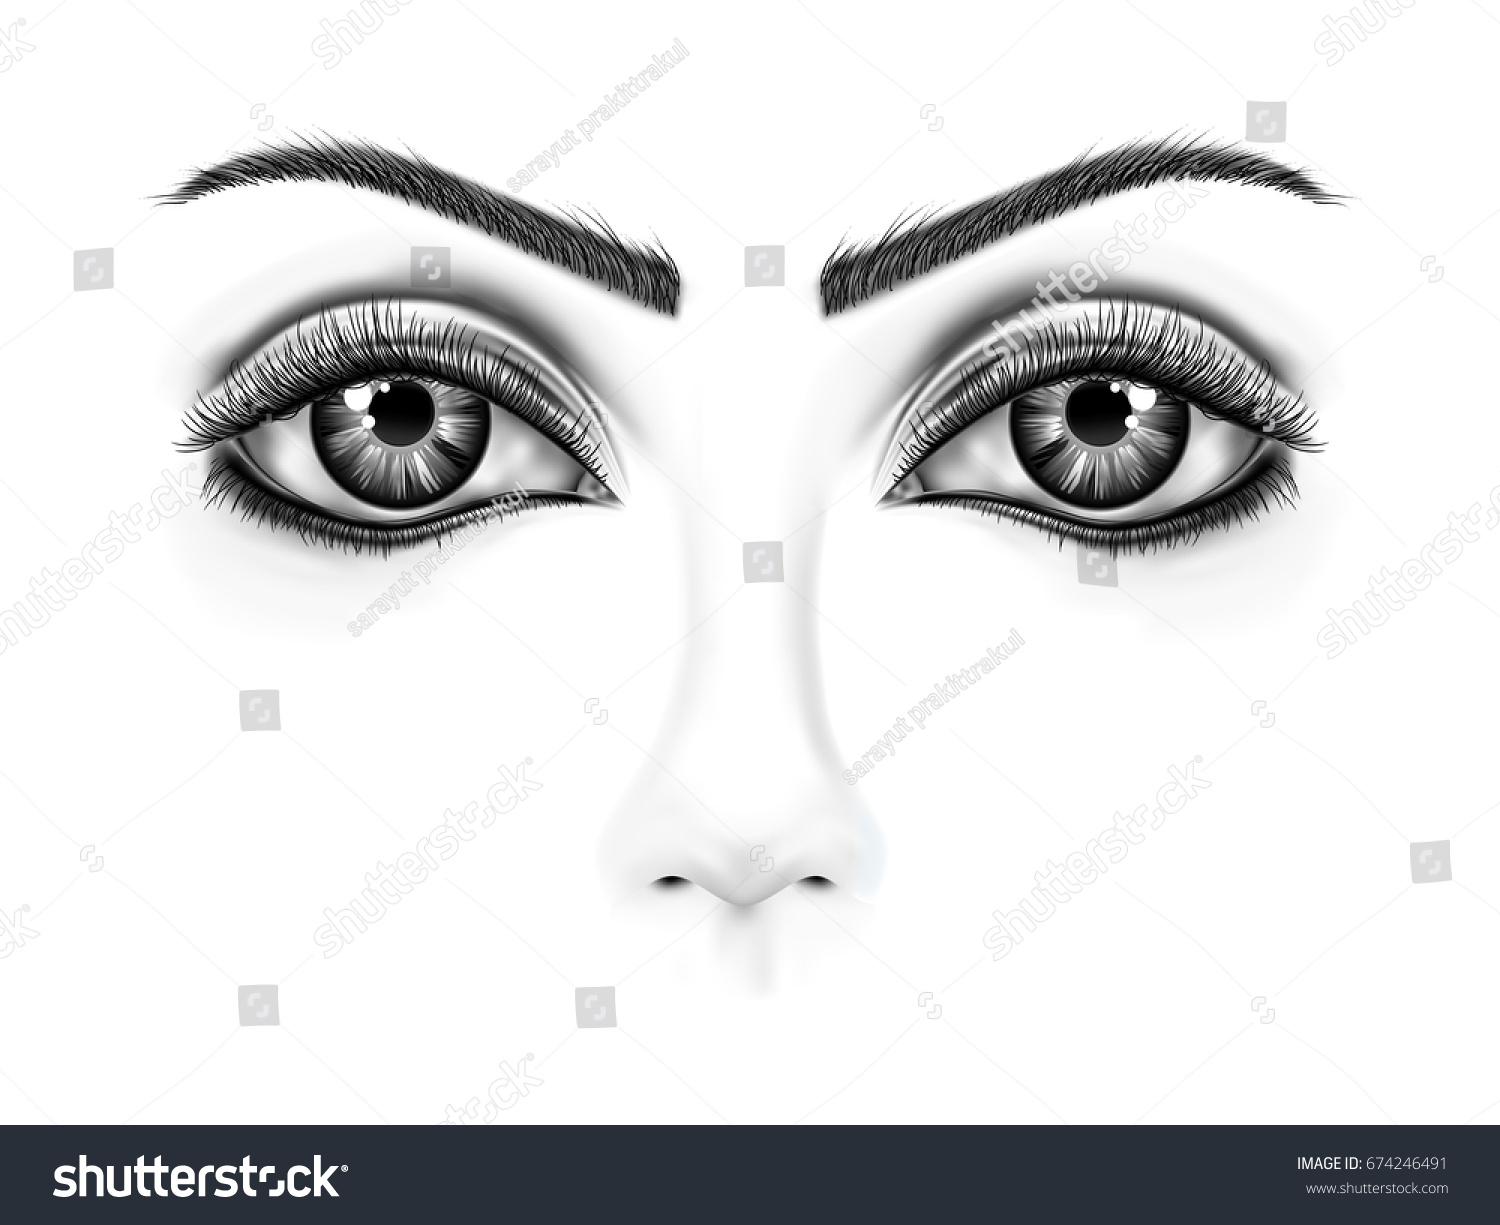 Drawing Eye Closeup Black White Background Stock Vector HD (Royalty ...